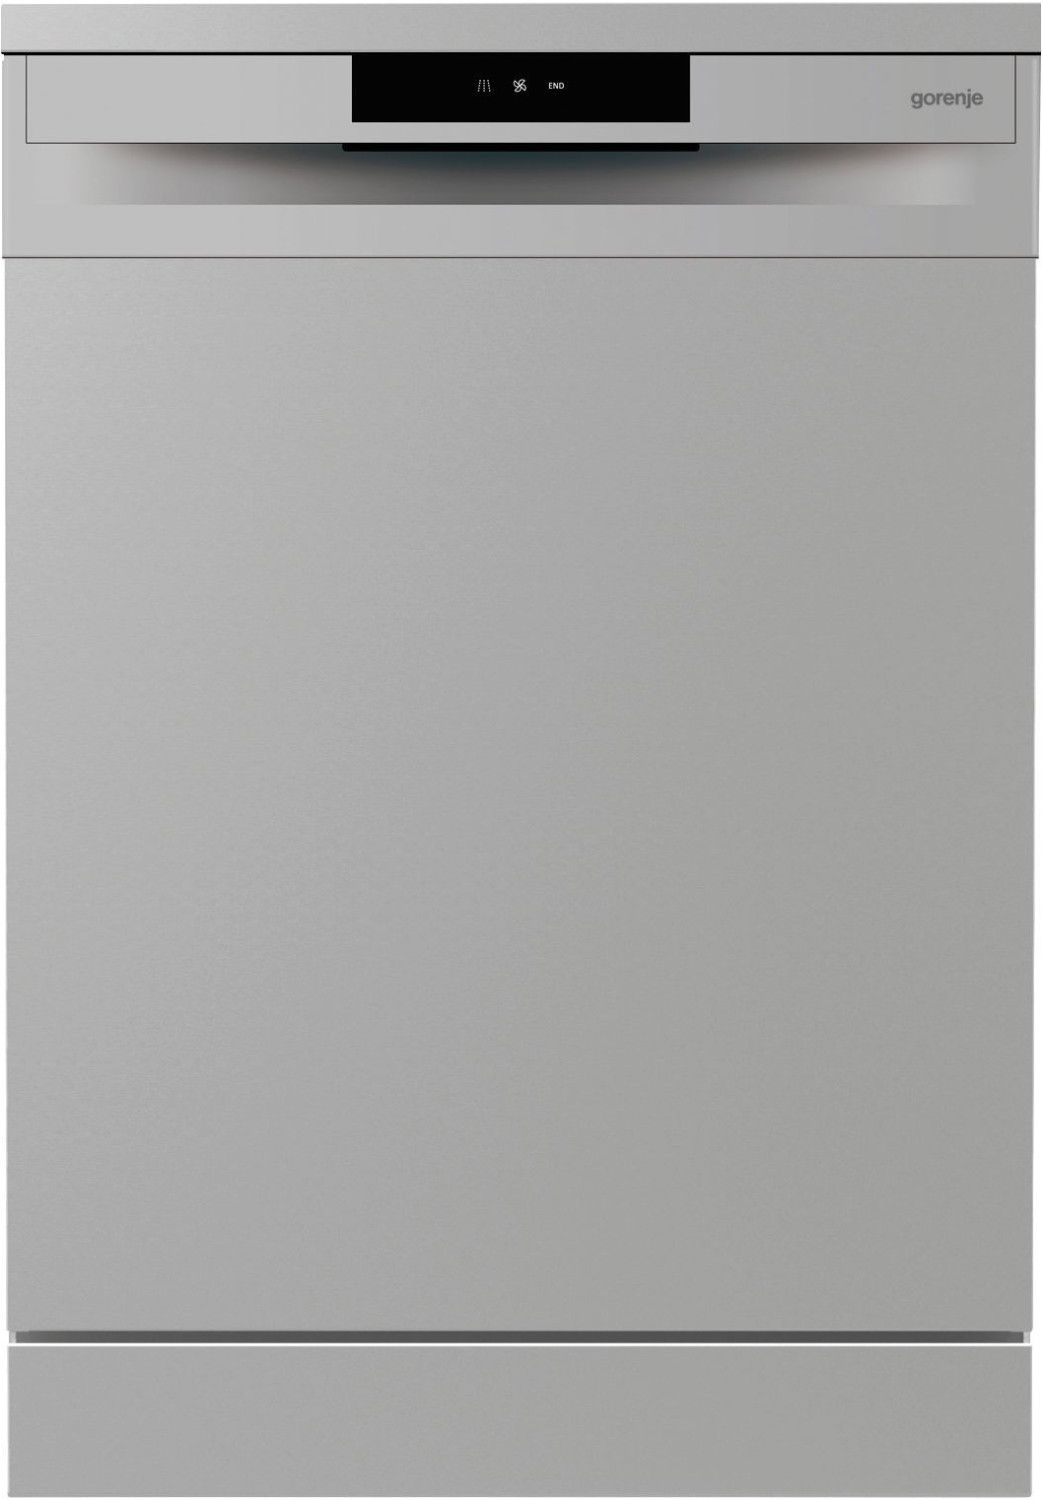 Image of Gorenje GS62010SUK